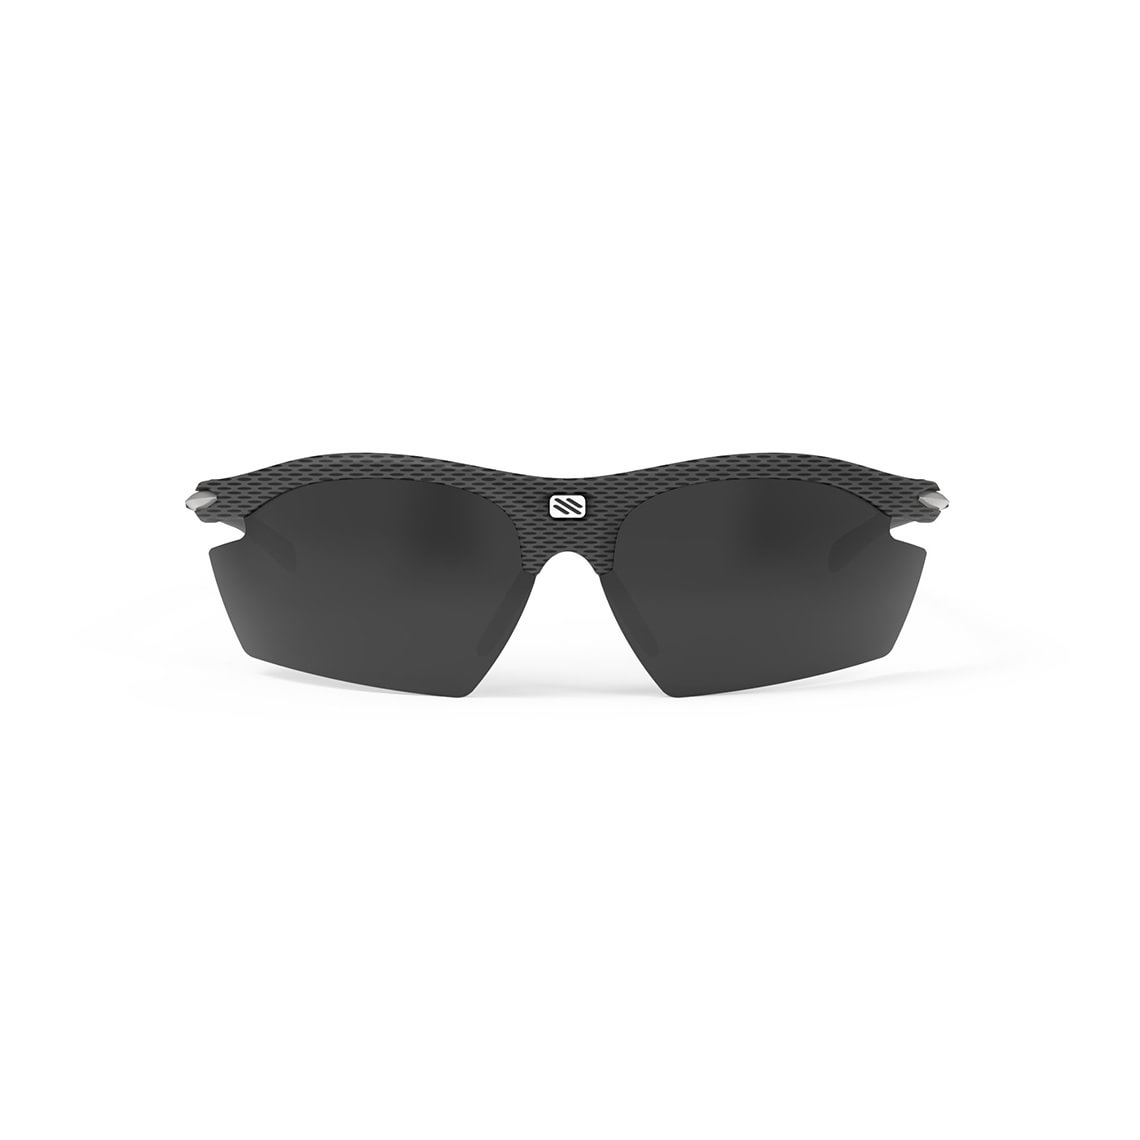 Rudy Project Rydon CARBON - SMOKE SP531014-0000